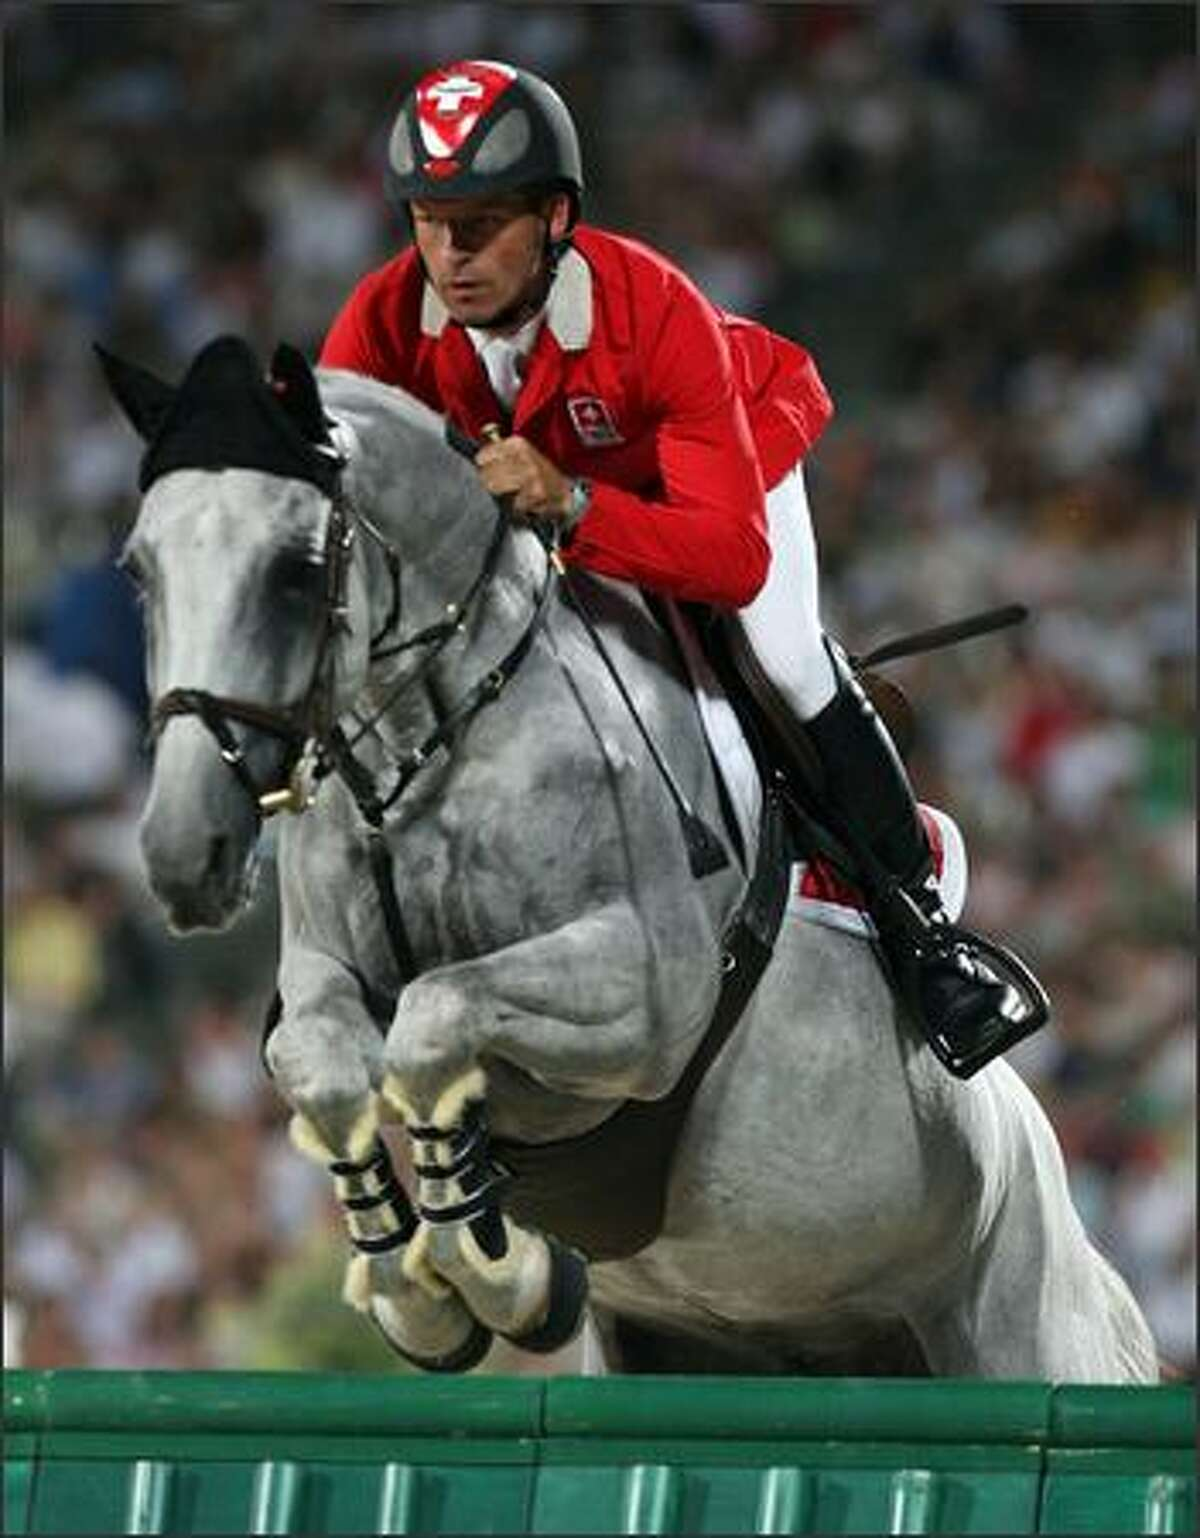 Pius Schwizer of Switzerland and Nobless M jump a fence during the Individual Jumping Final - Round A held at the Hong Kong Olympic Equestrian Venue in Sha Tin during day 13 of the Beijing 2008 Olympic Games on Thursday in Hong Kong.